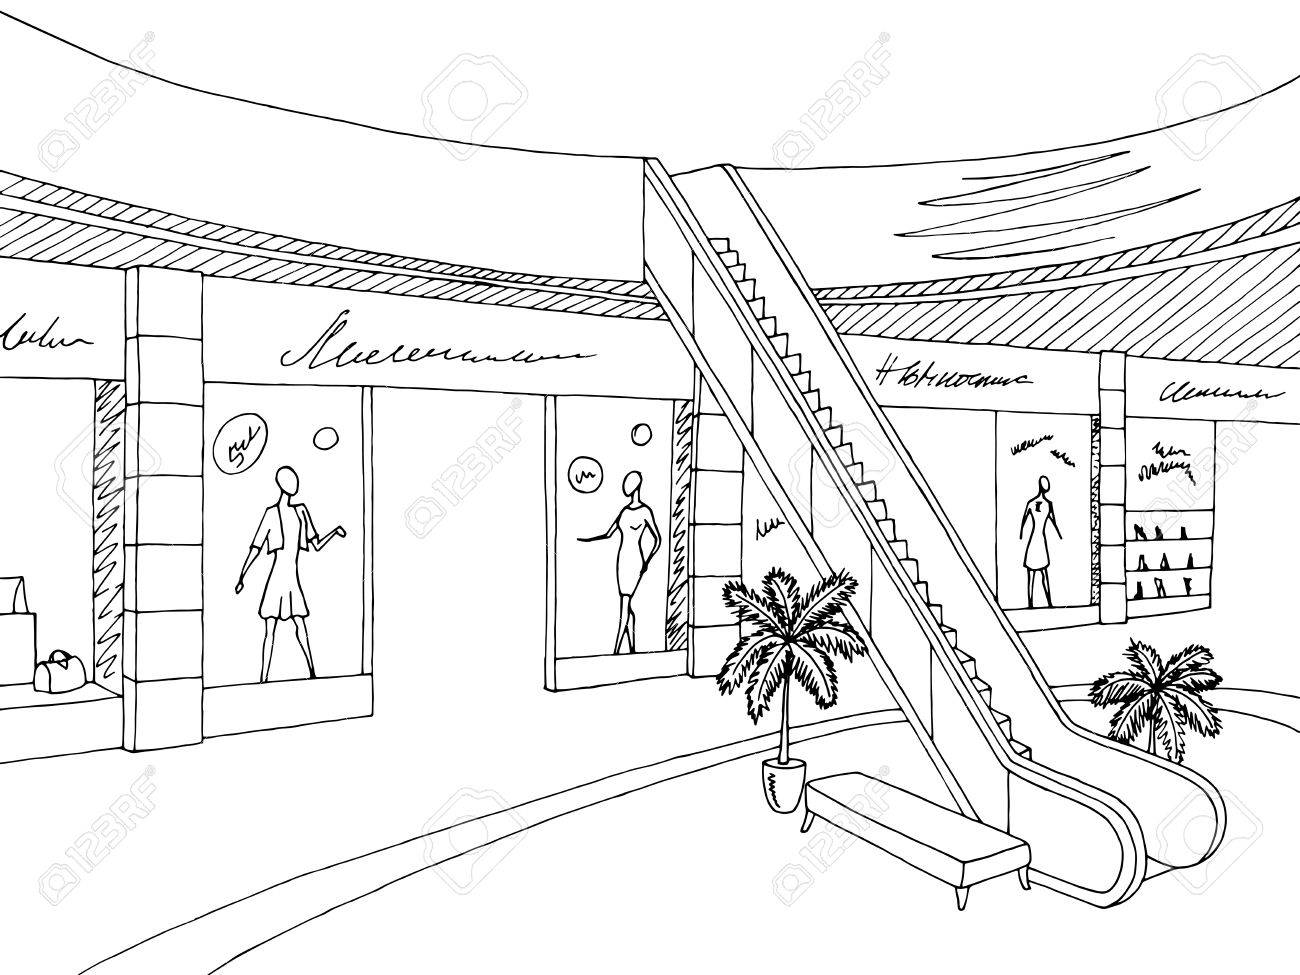 1300x975 Shopping Mall Graphic Black White Interior Sketch Illustration